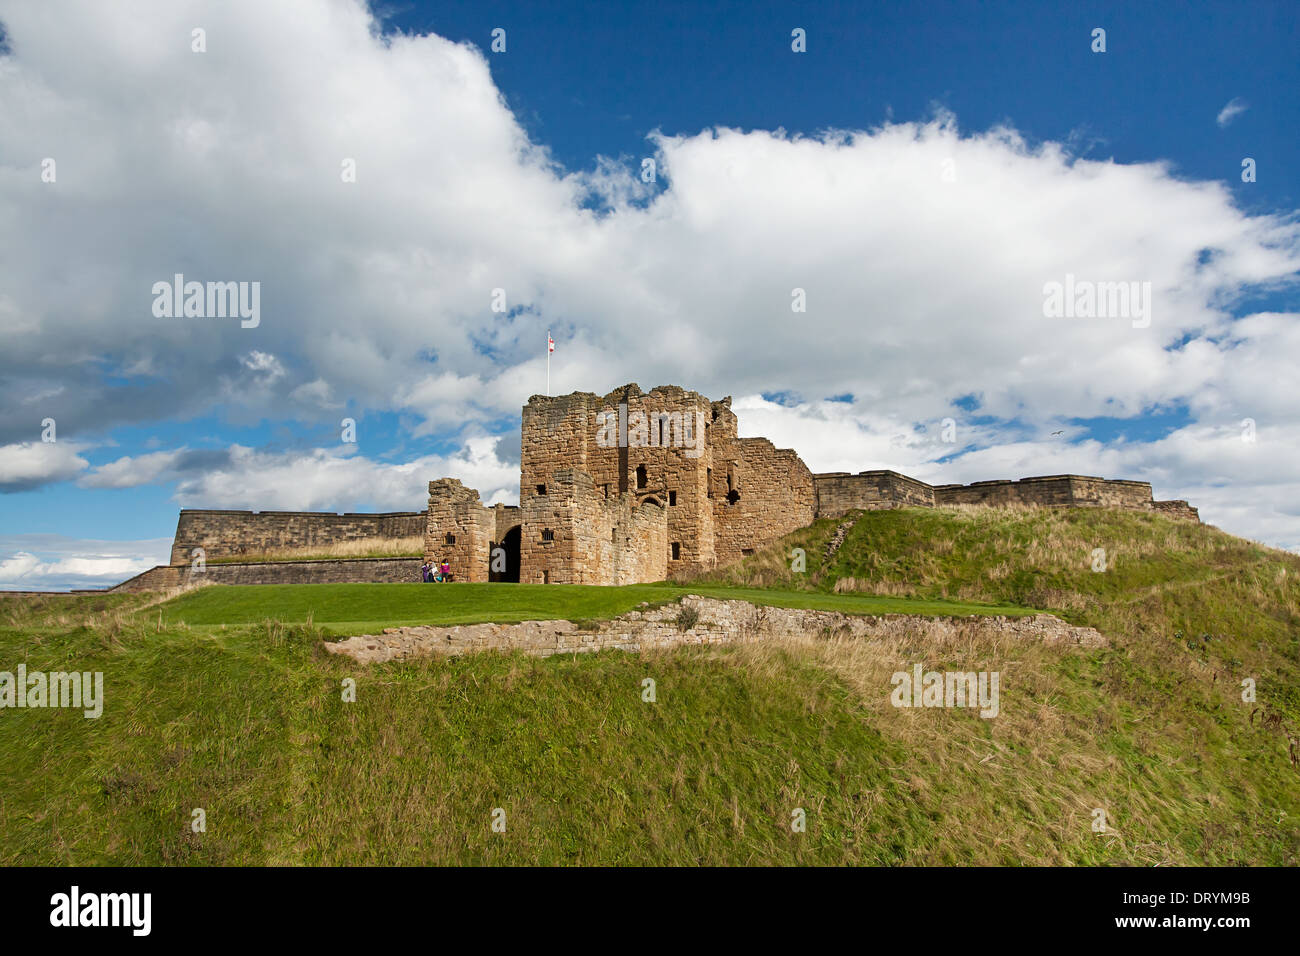 The front of Tynemouth Castle and priory located on the North bank of the river Tyne near Newcastle - Stock Image